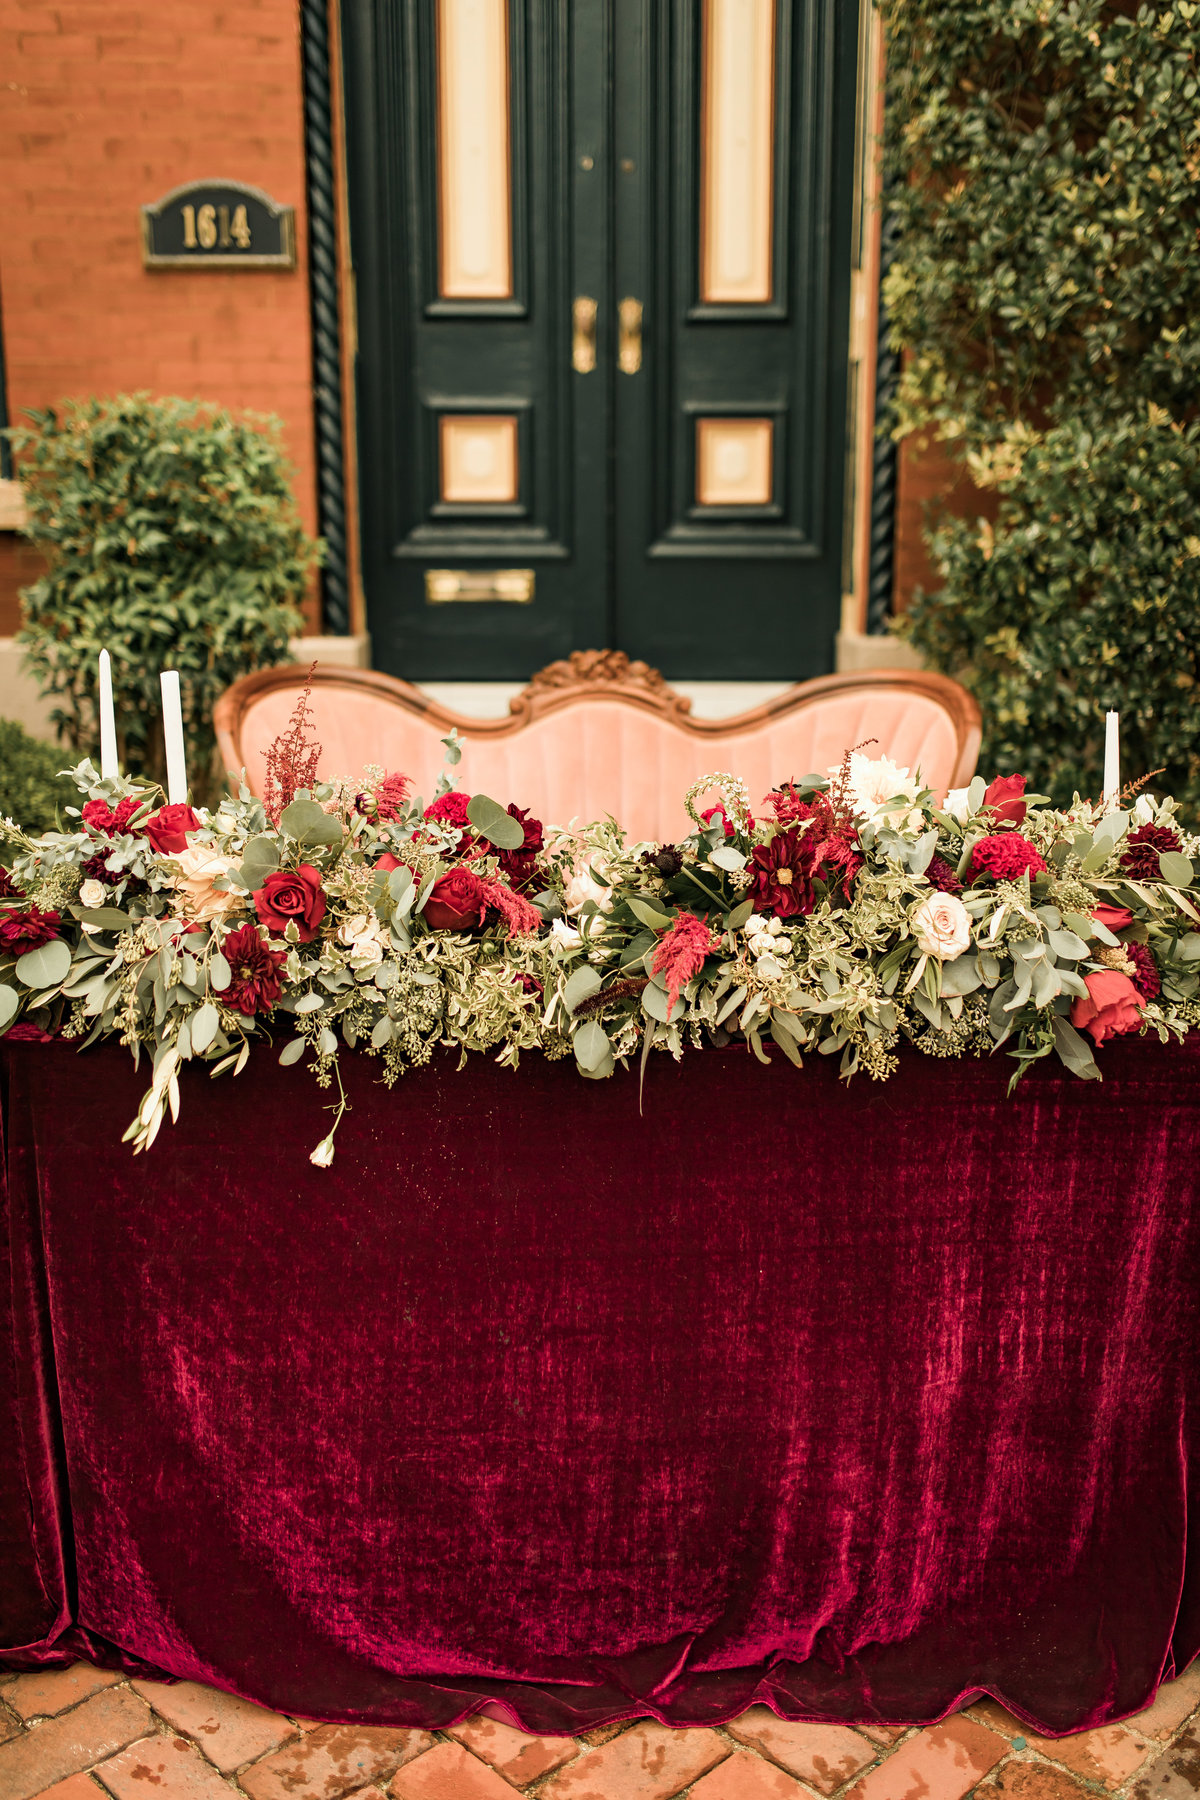 Fall Boho-Inspired Styled Shoot Lafayette Square Historic District  St. Louis, Missouri  Allison Slater Photography  Wedding Photographer86